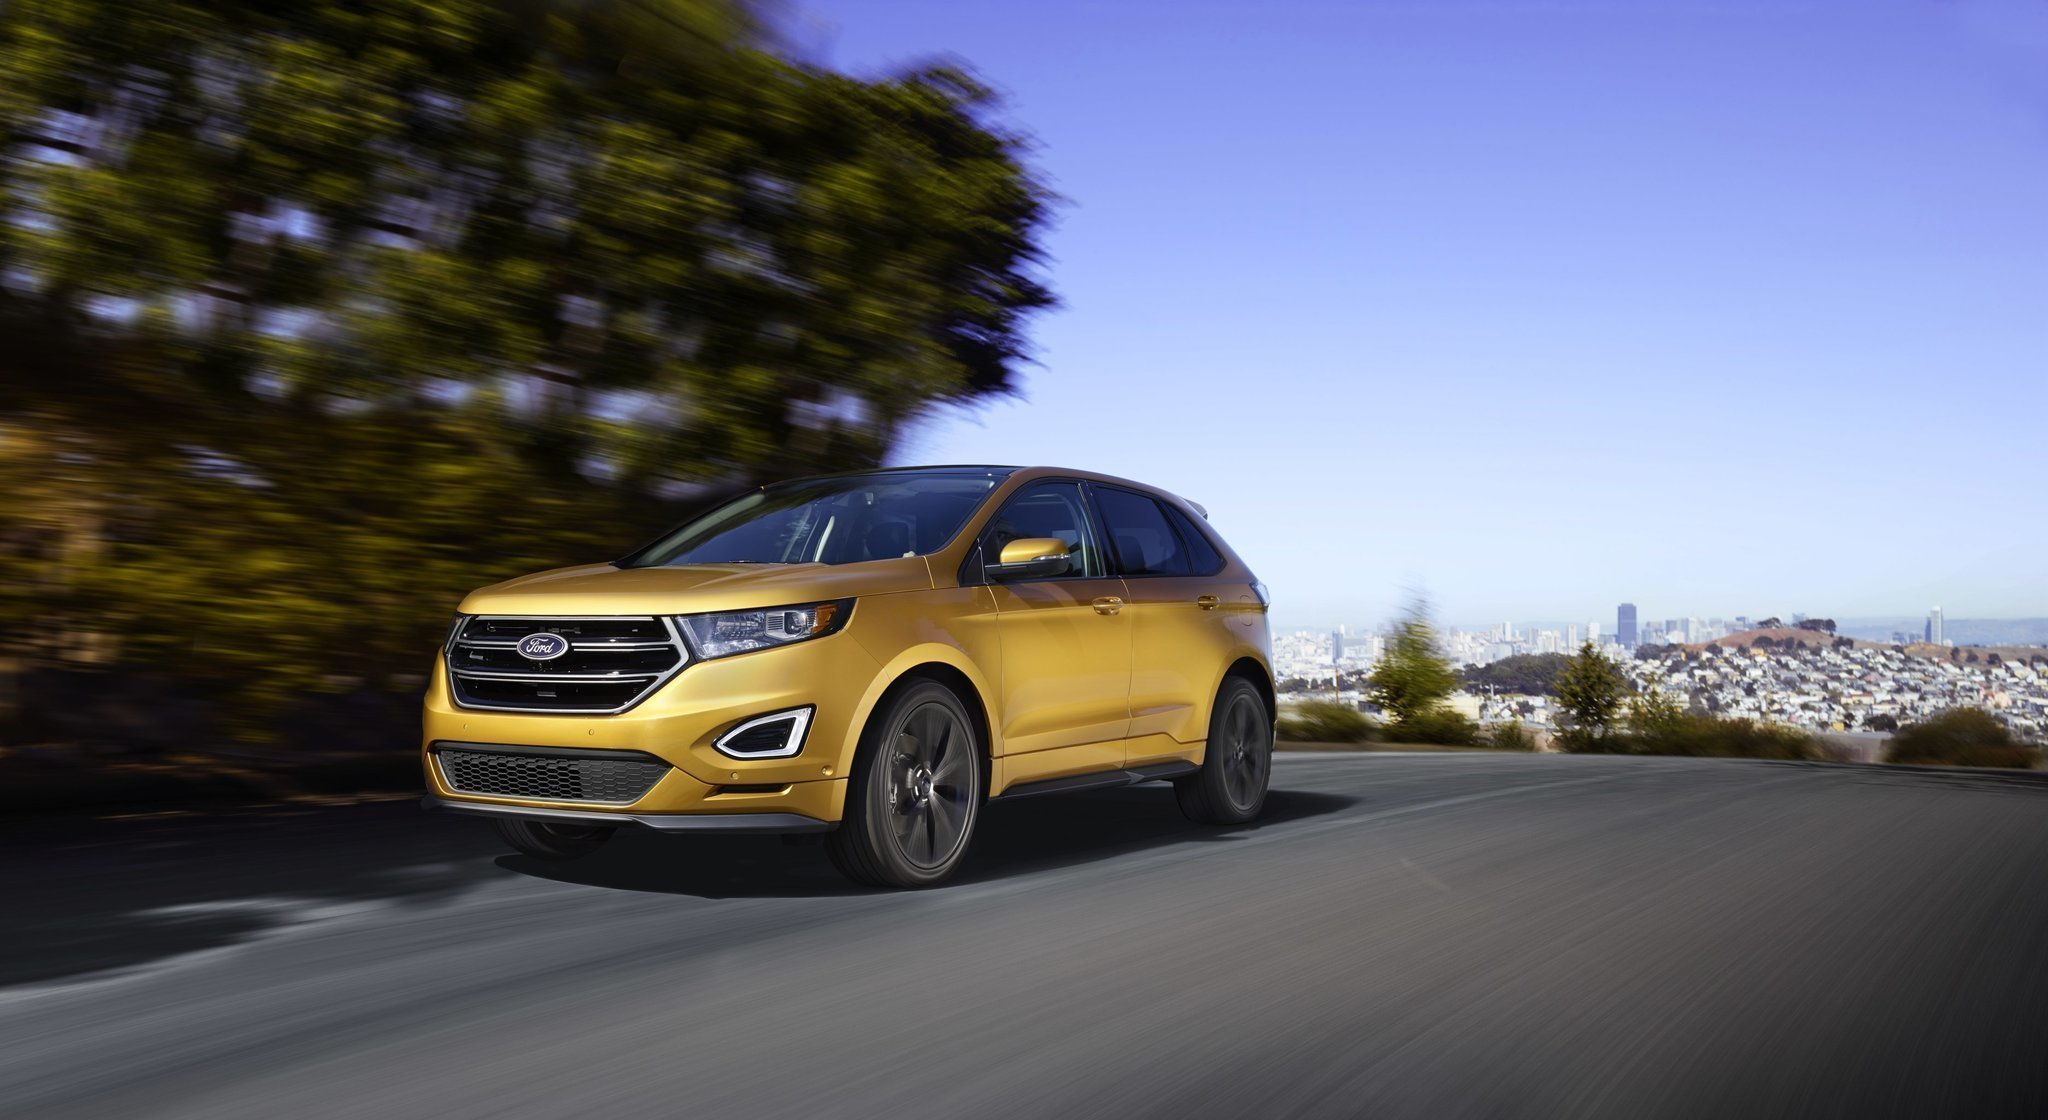 2016 Ford Edge lauded for reliability, powerful engines - The San Diego  Union-Tribune